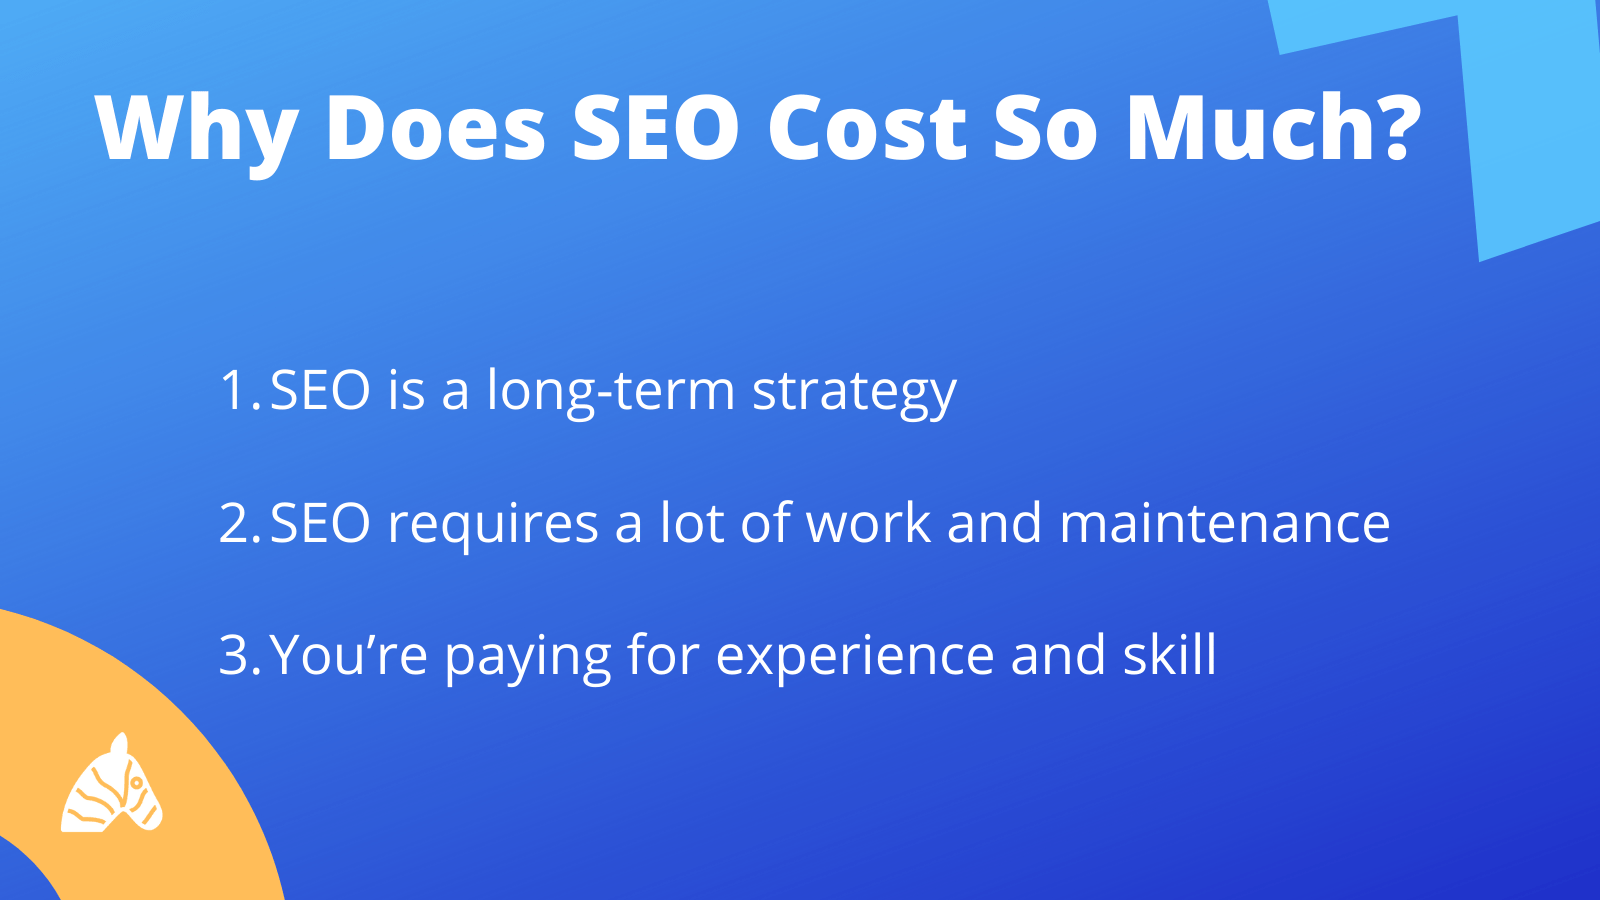 an explanation of costs involved with SEO